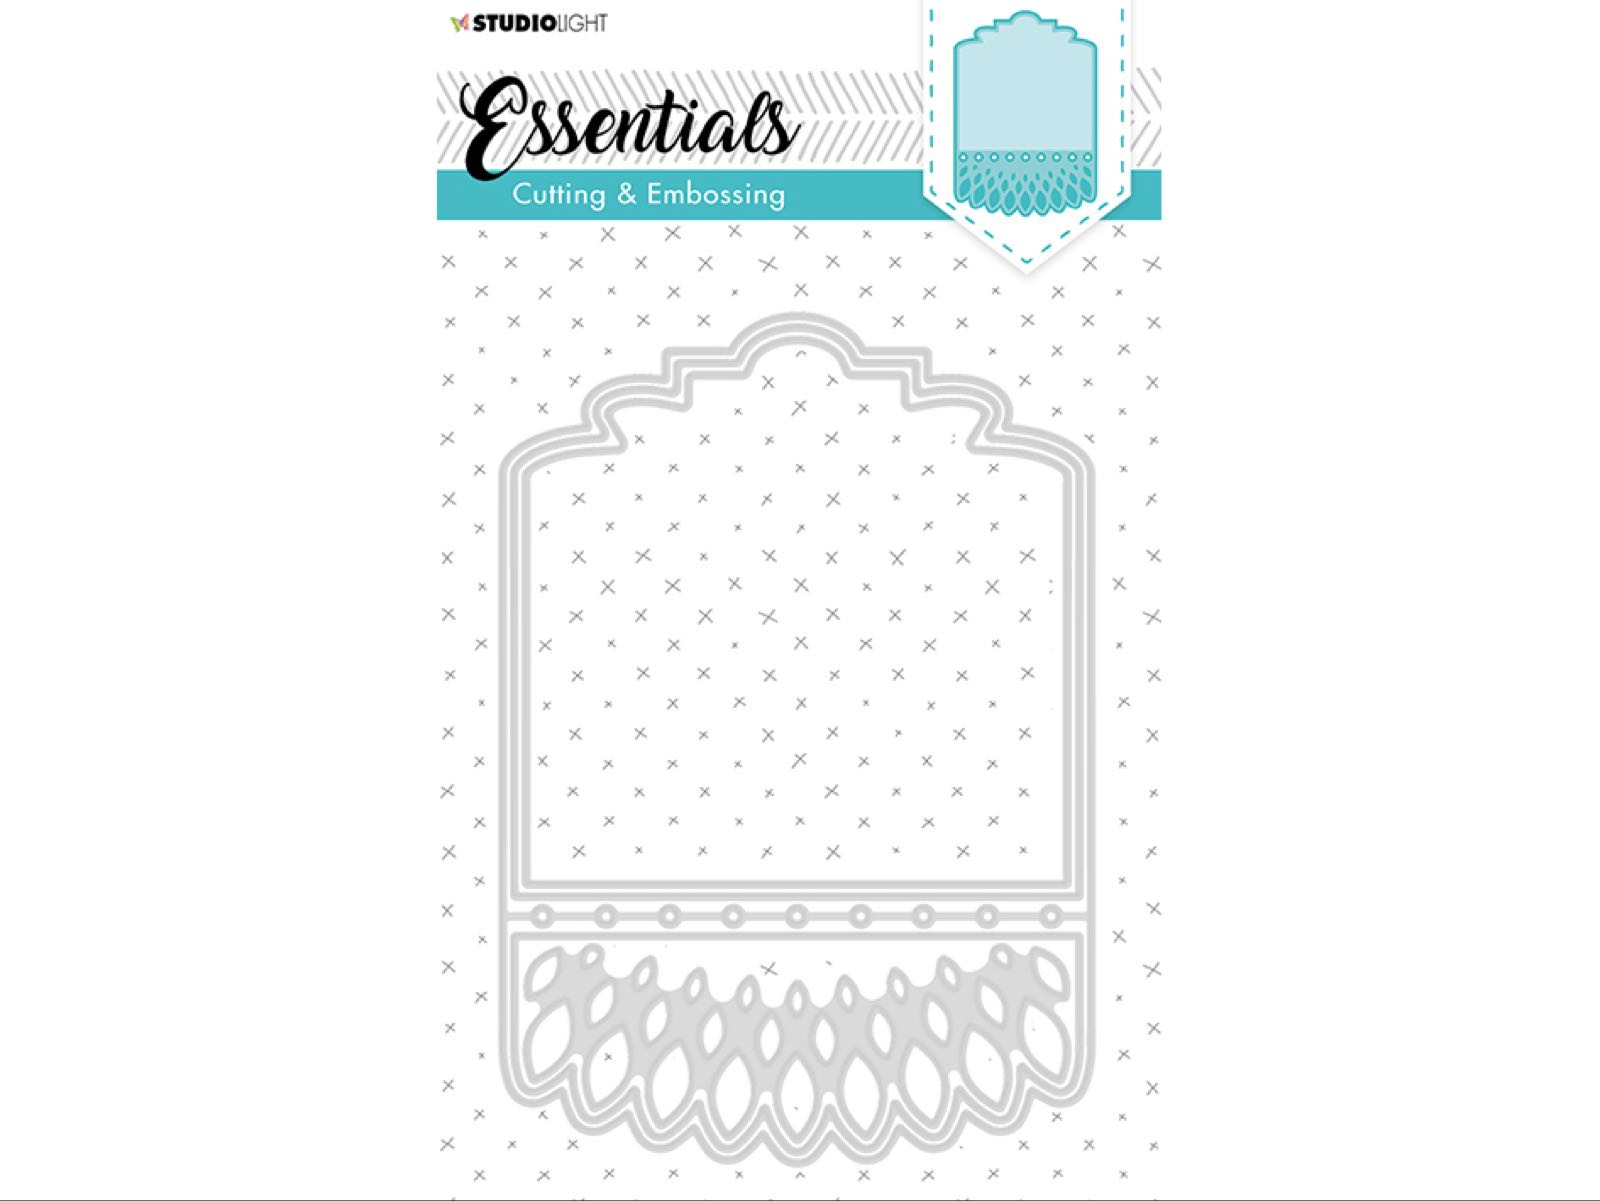 StudioLight Essentials cutting & embossing die SL251